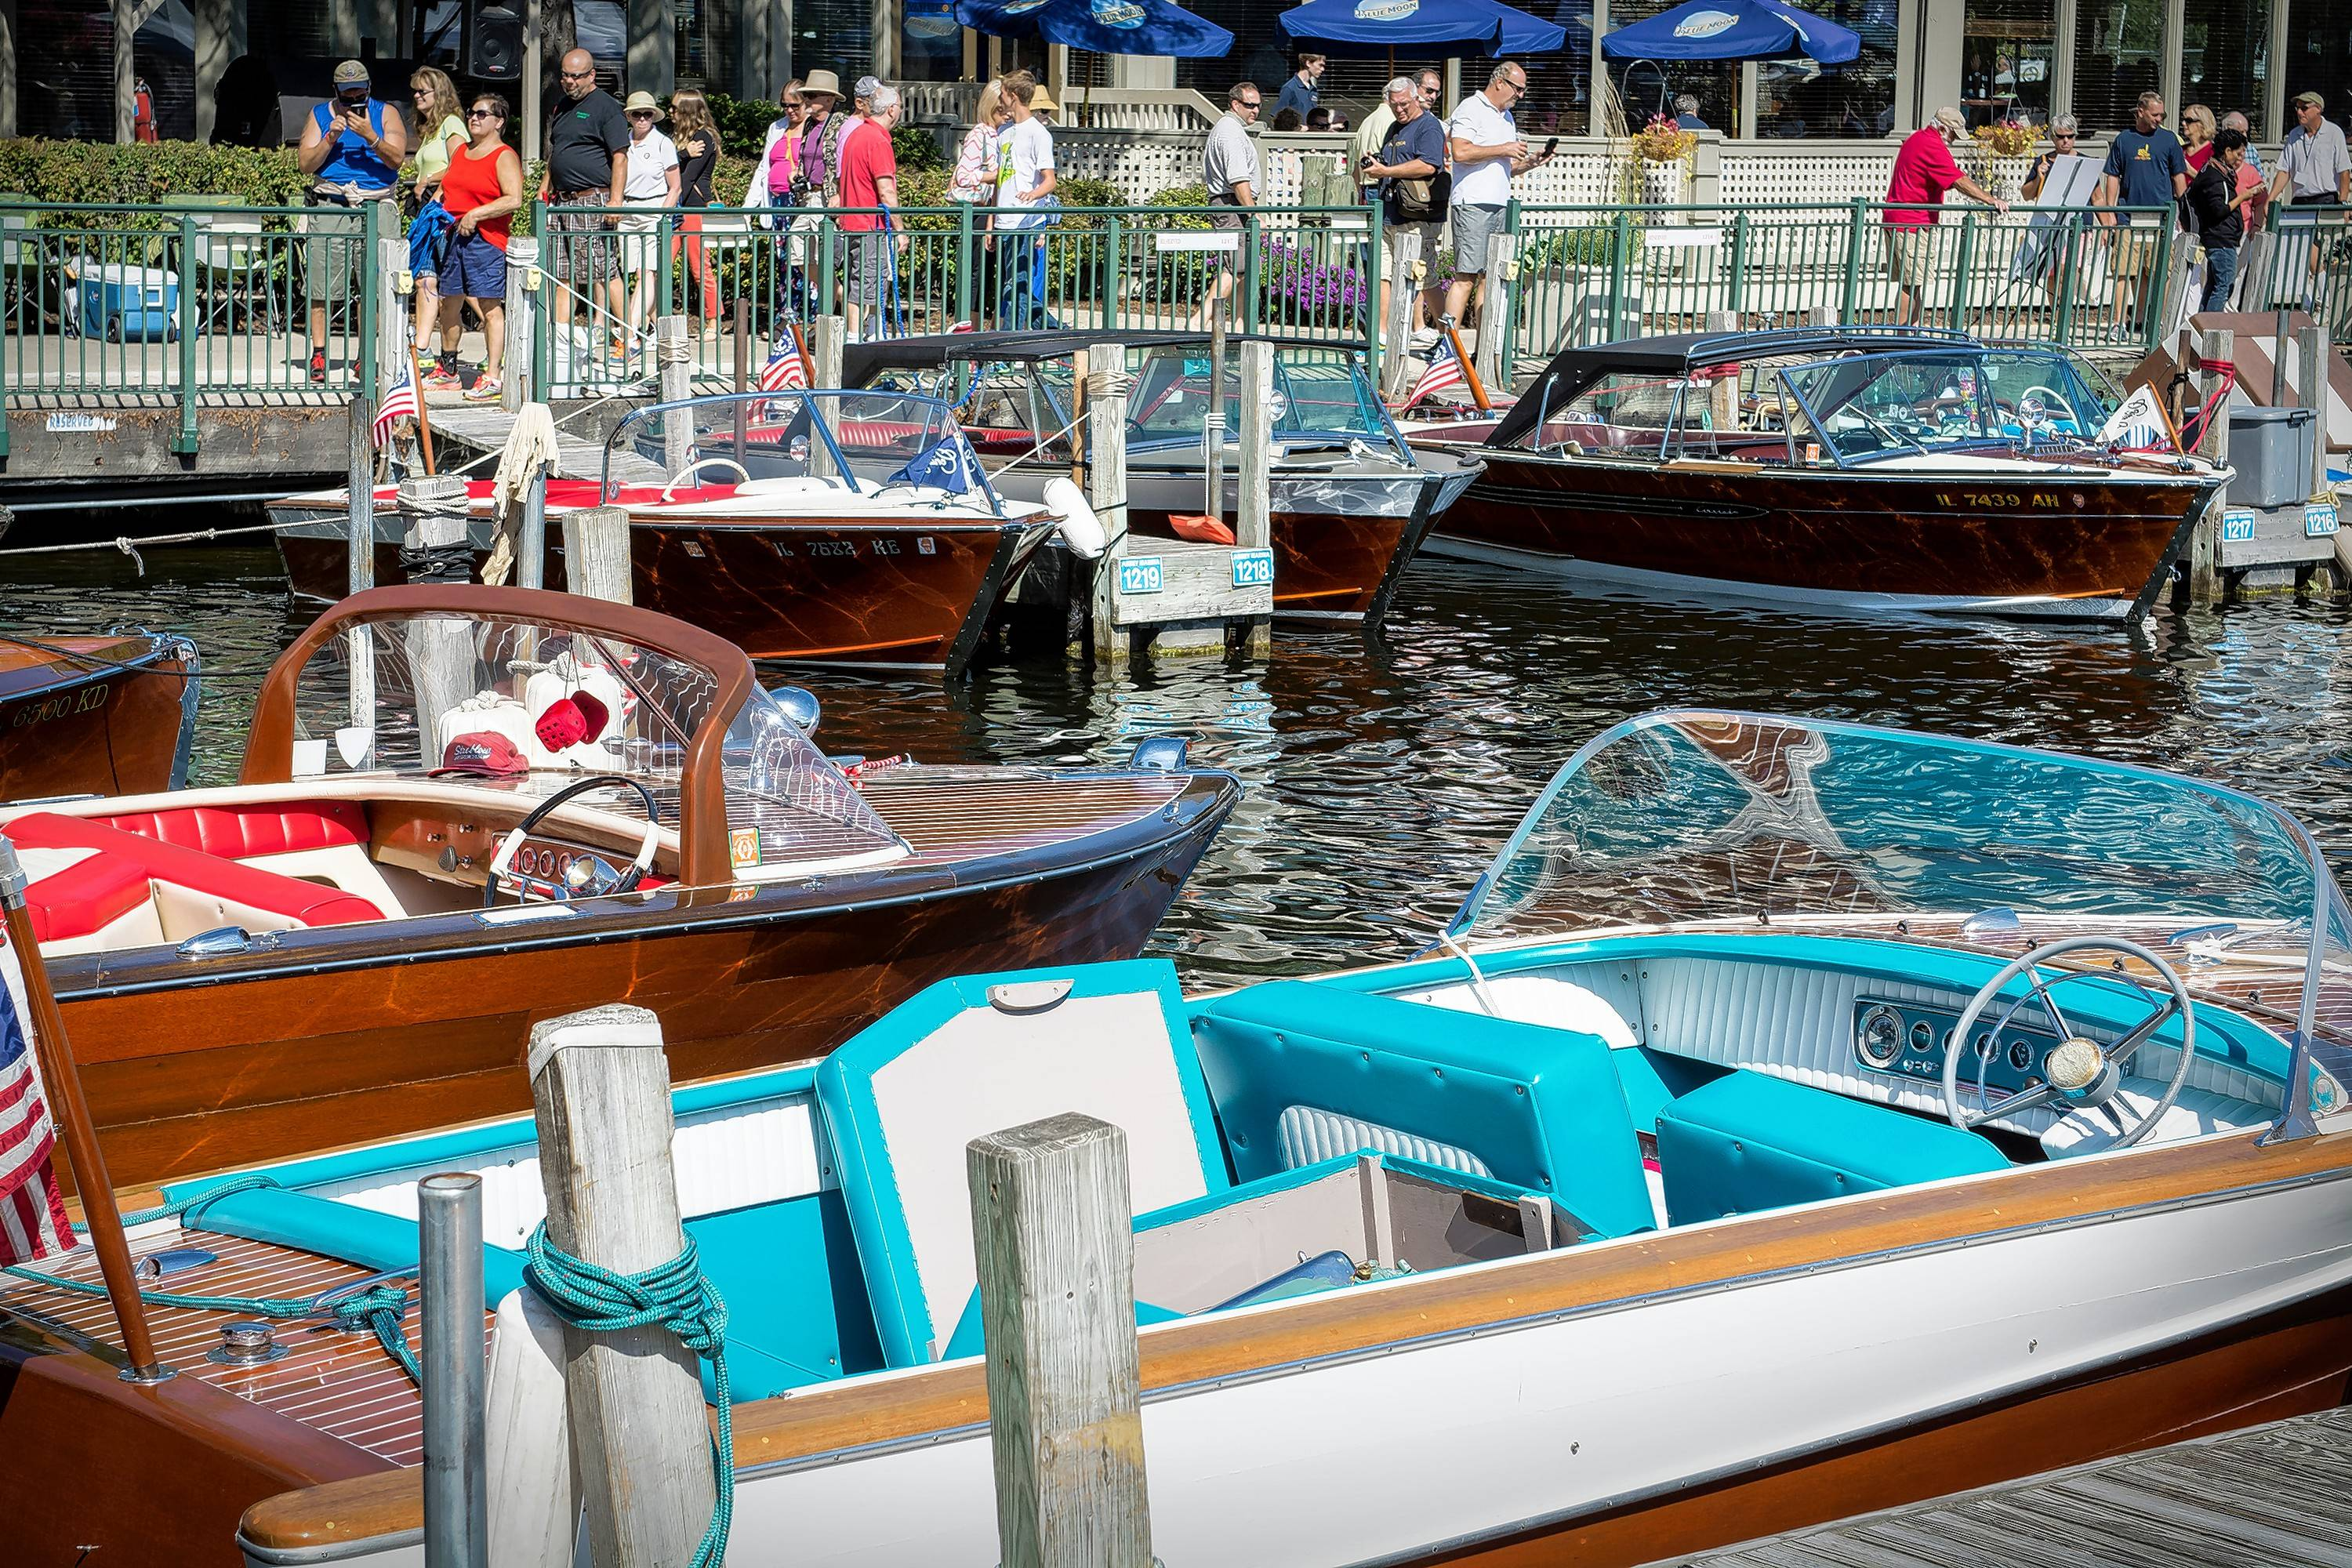 The Geneva Lakes show is sponsored by the Blackhawk Chapter of the Antique and Classic Boat Society.